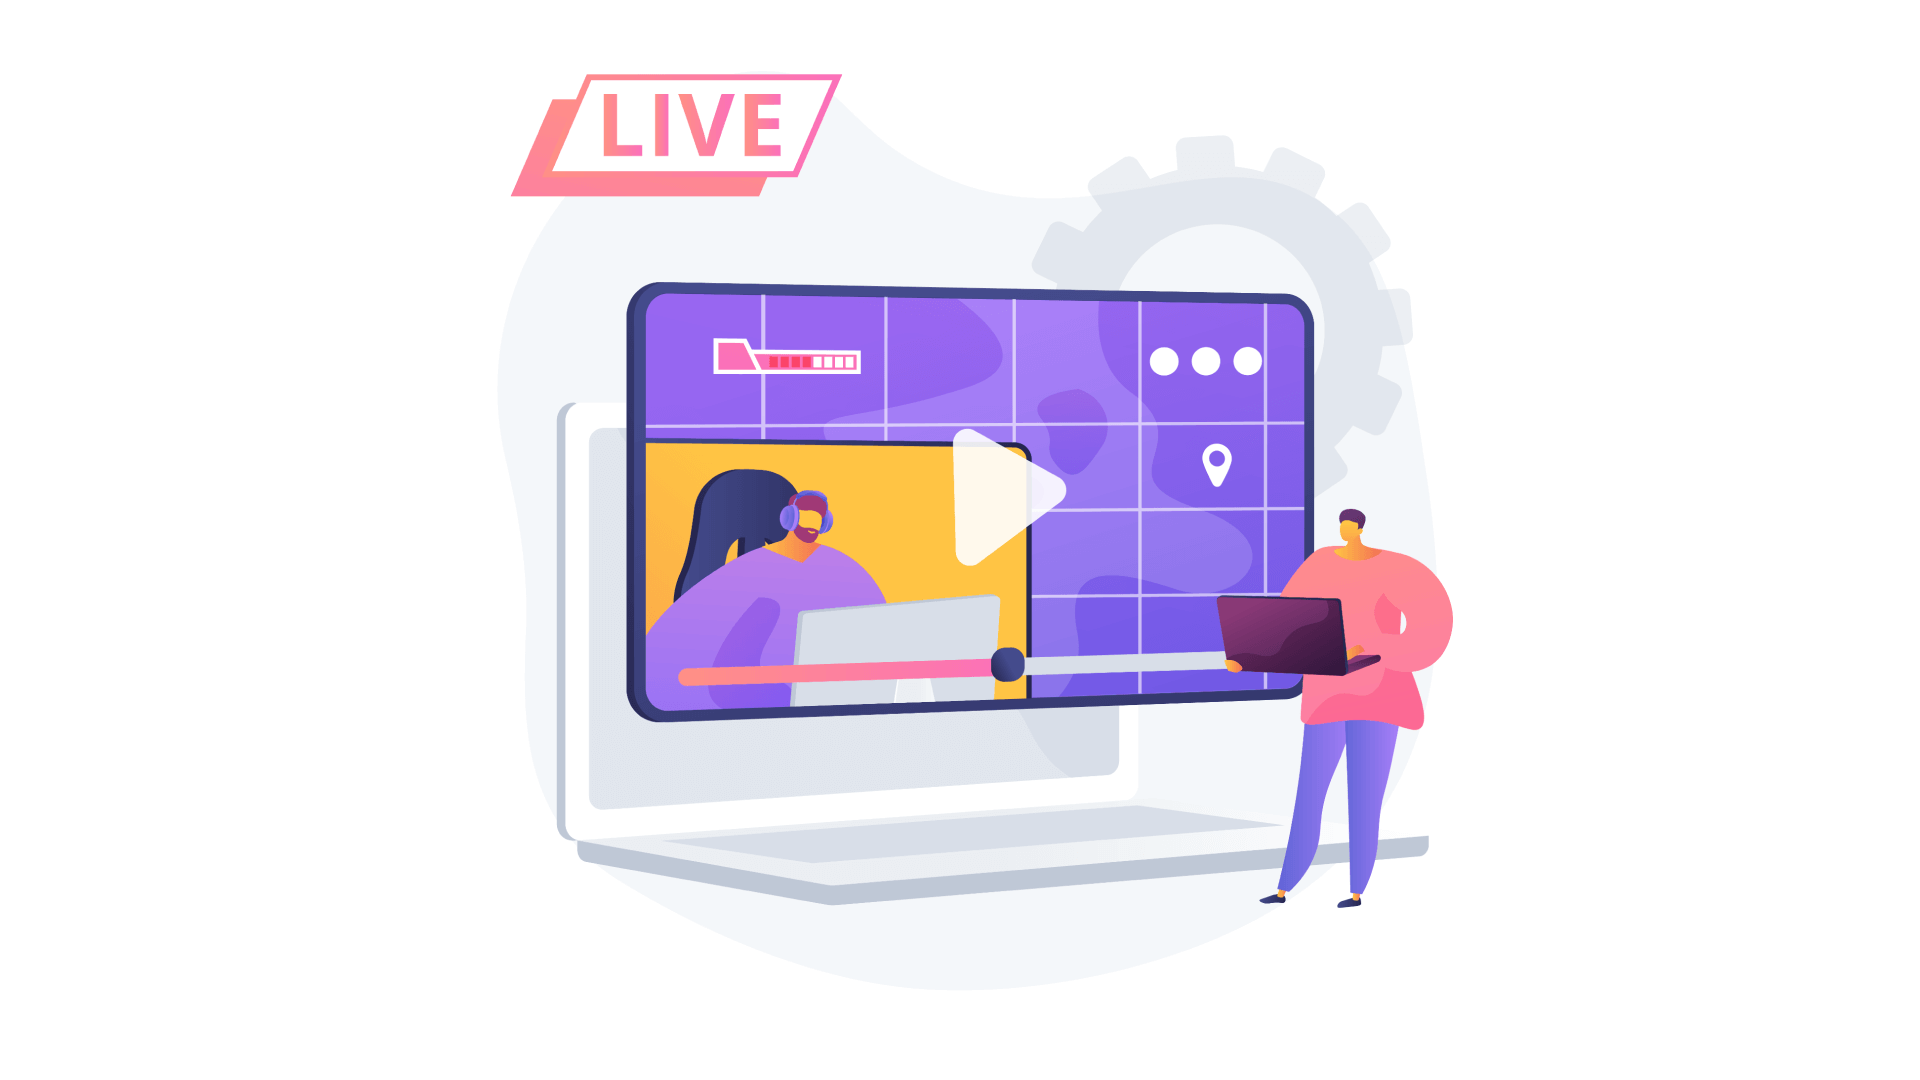 Live streaming is a promising niche with dozens of investors looking to finance promising projects.